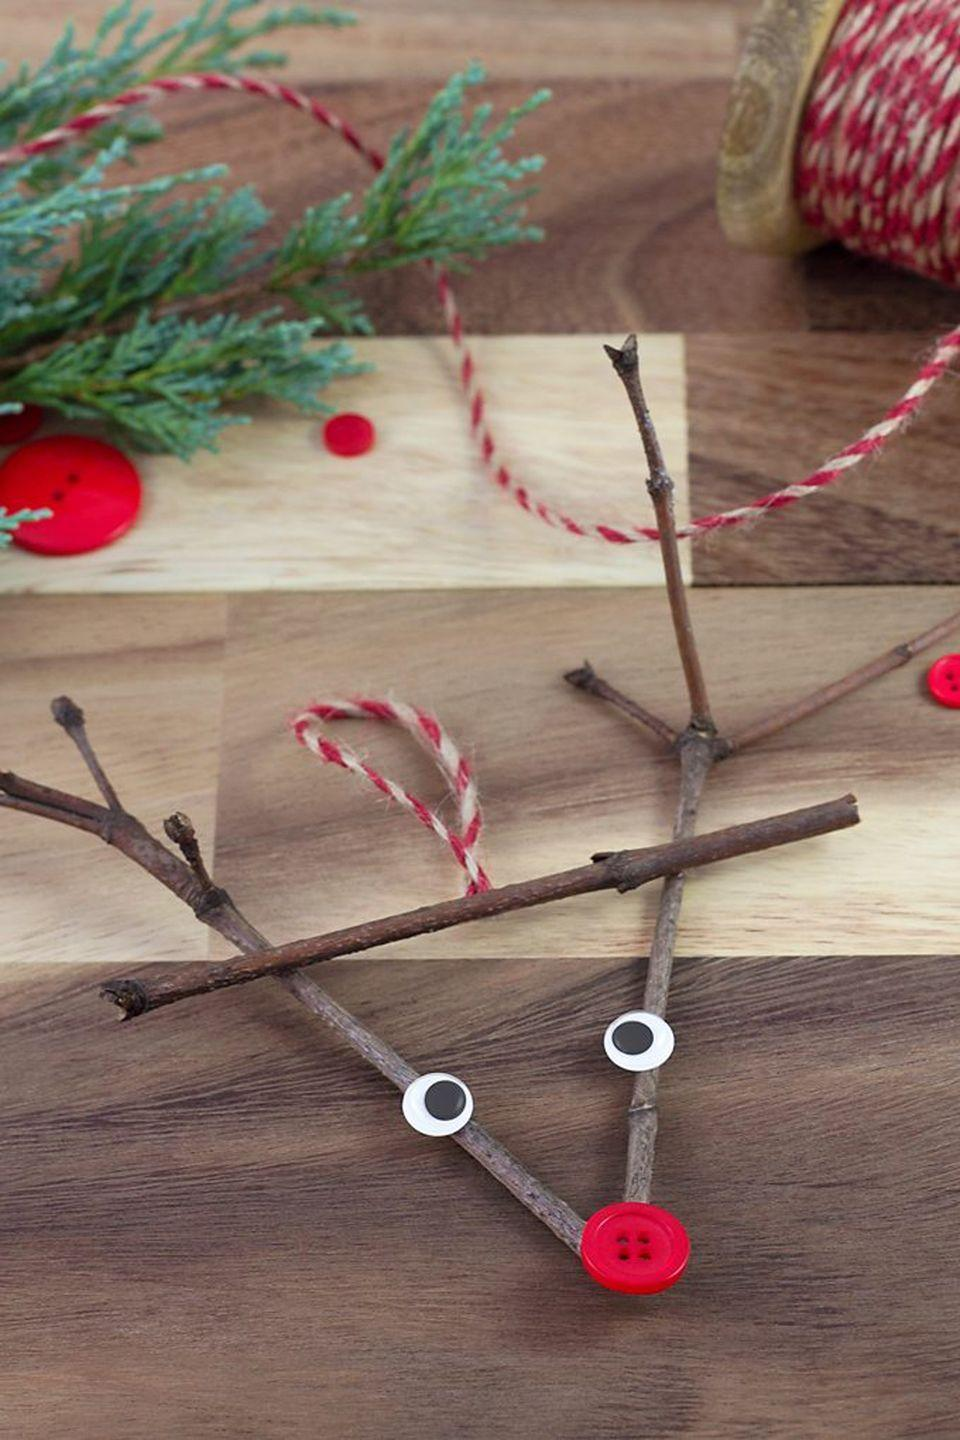 "<p>This reindeer ornament will go down in (craft) history.</p><p><strong>Get the tutorial at <a href=""https://www.firefliesandmudpies.com/twig-reindeer-ornaments/"" rel=""nofollow noopener"" target=""_blank"" data-ylk=""slk:Fireflies and Mud Pies"" class=""link rapid-noclick-resp"">Fireflies and Mud Pies</a>.</strong></p>"